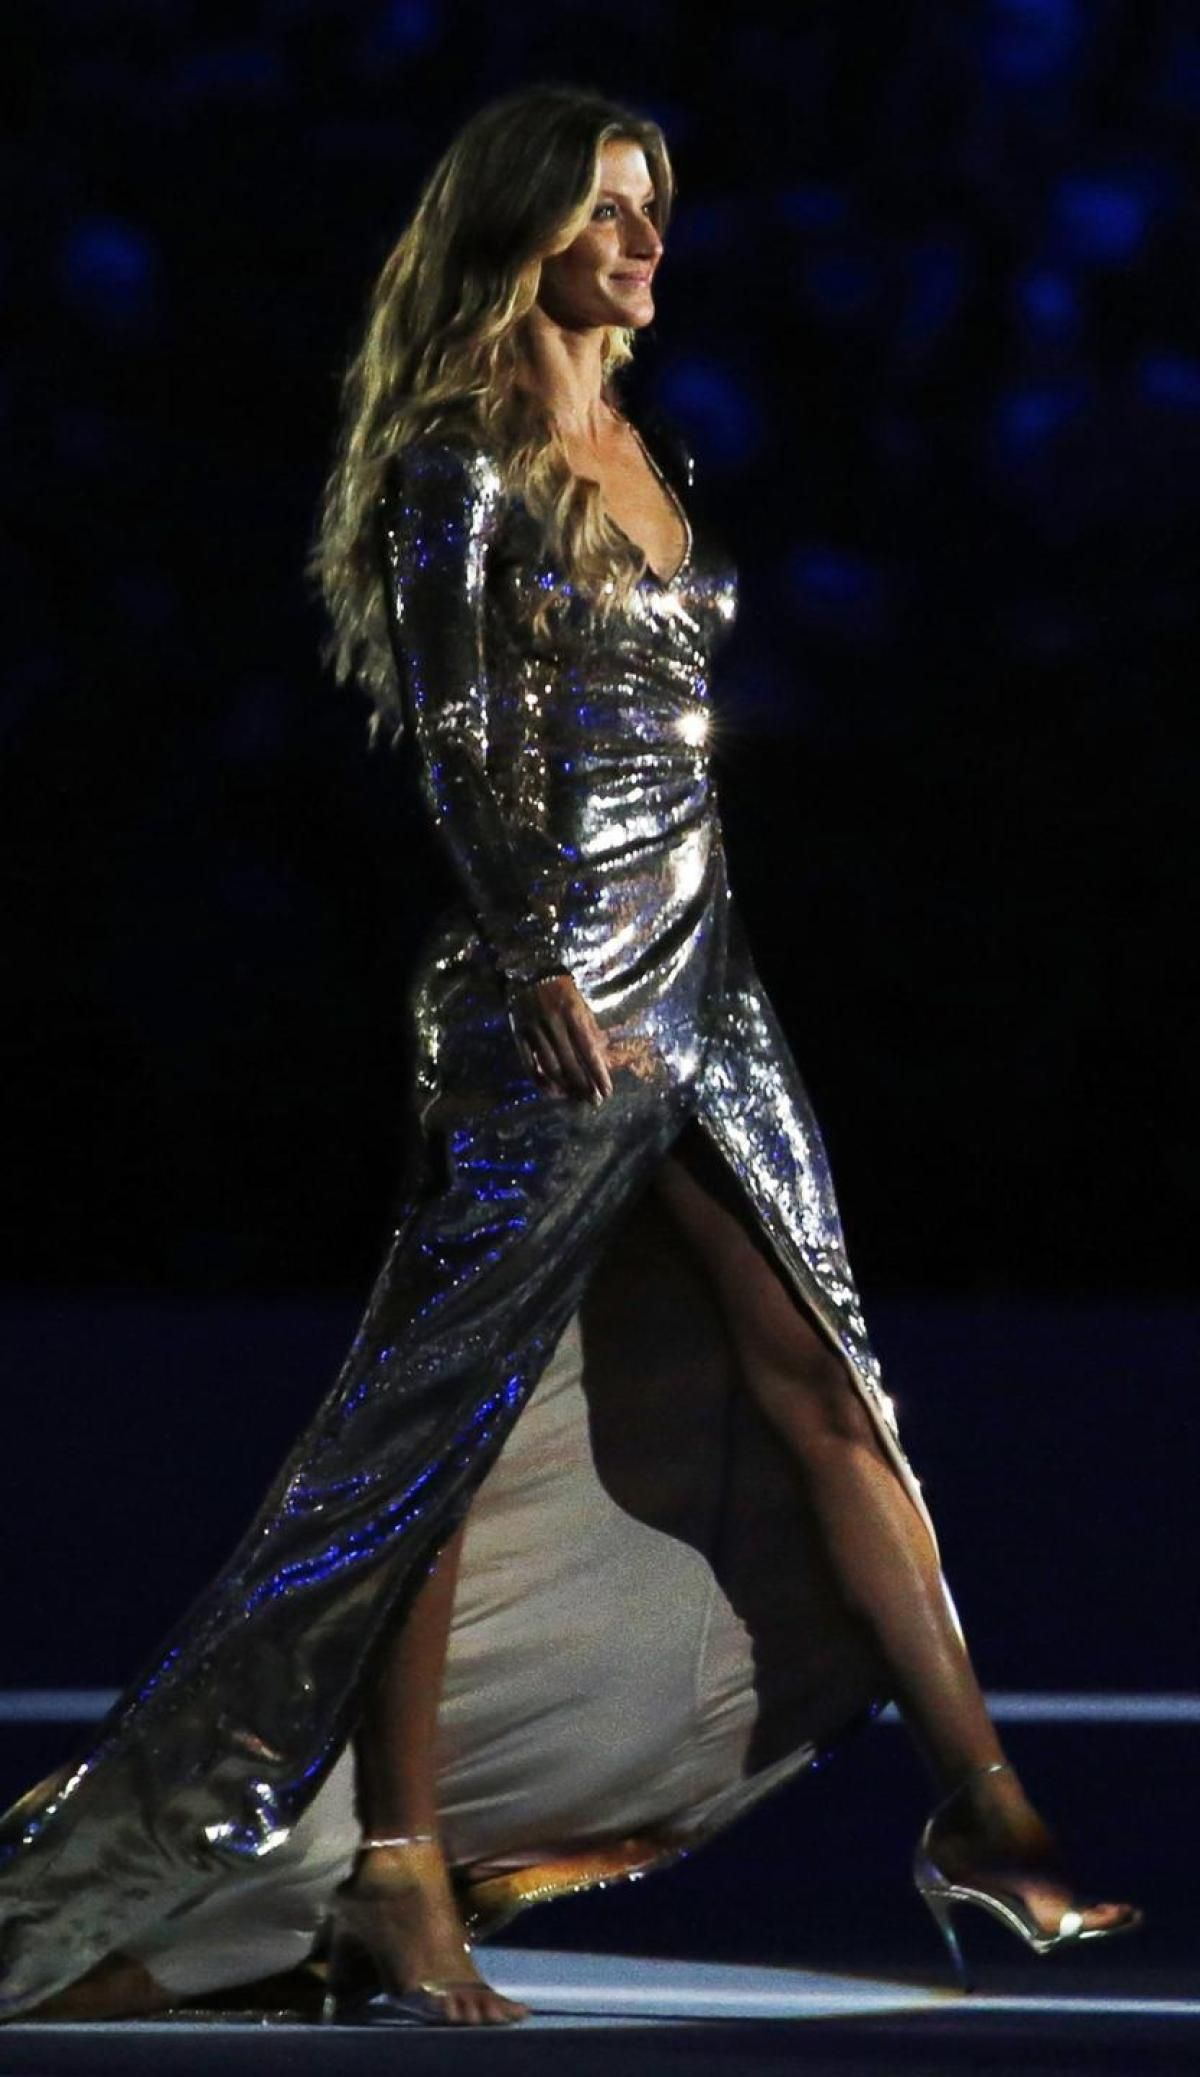 Gisele Bundchen At Opening Night Olympics Rio - Celebzz ...